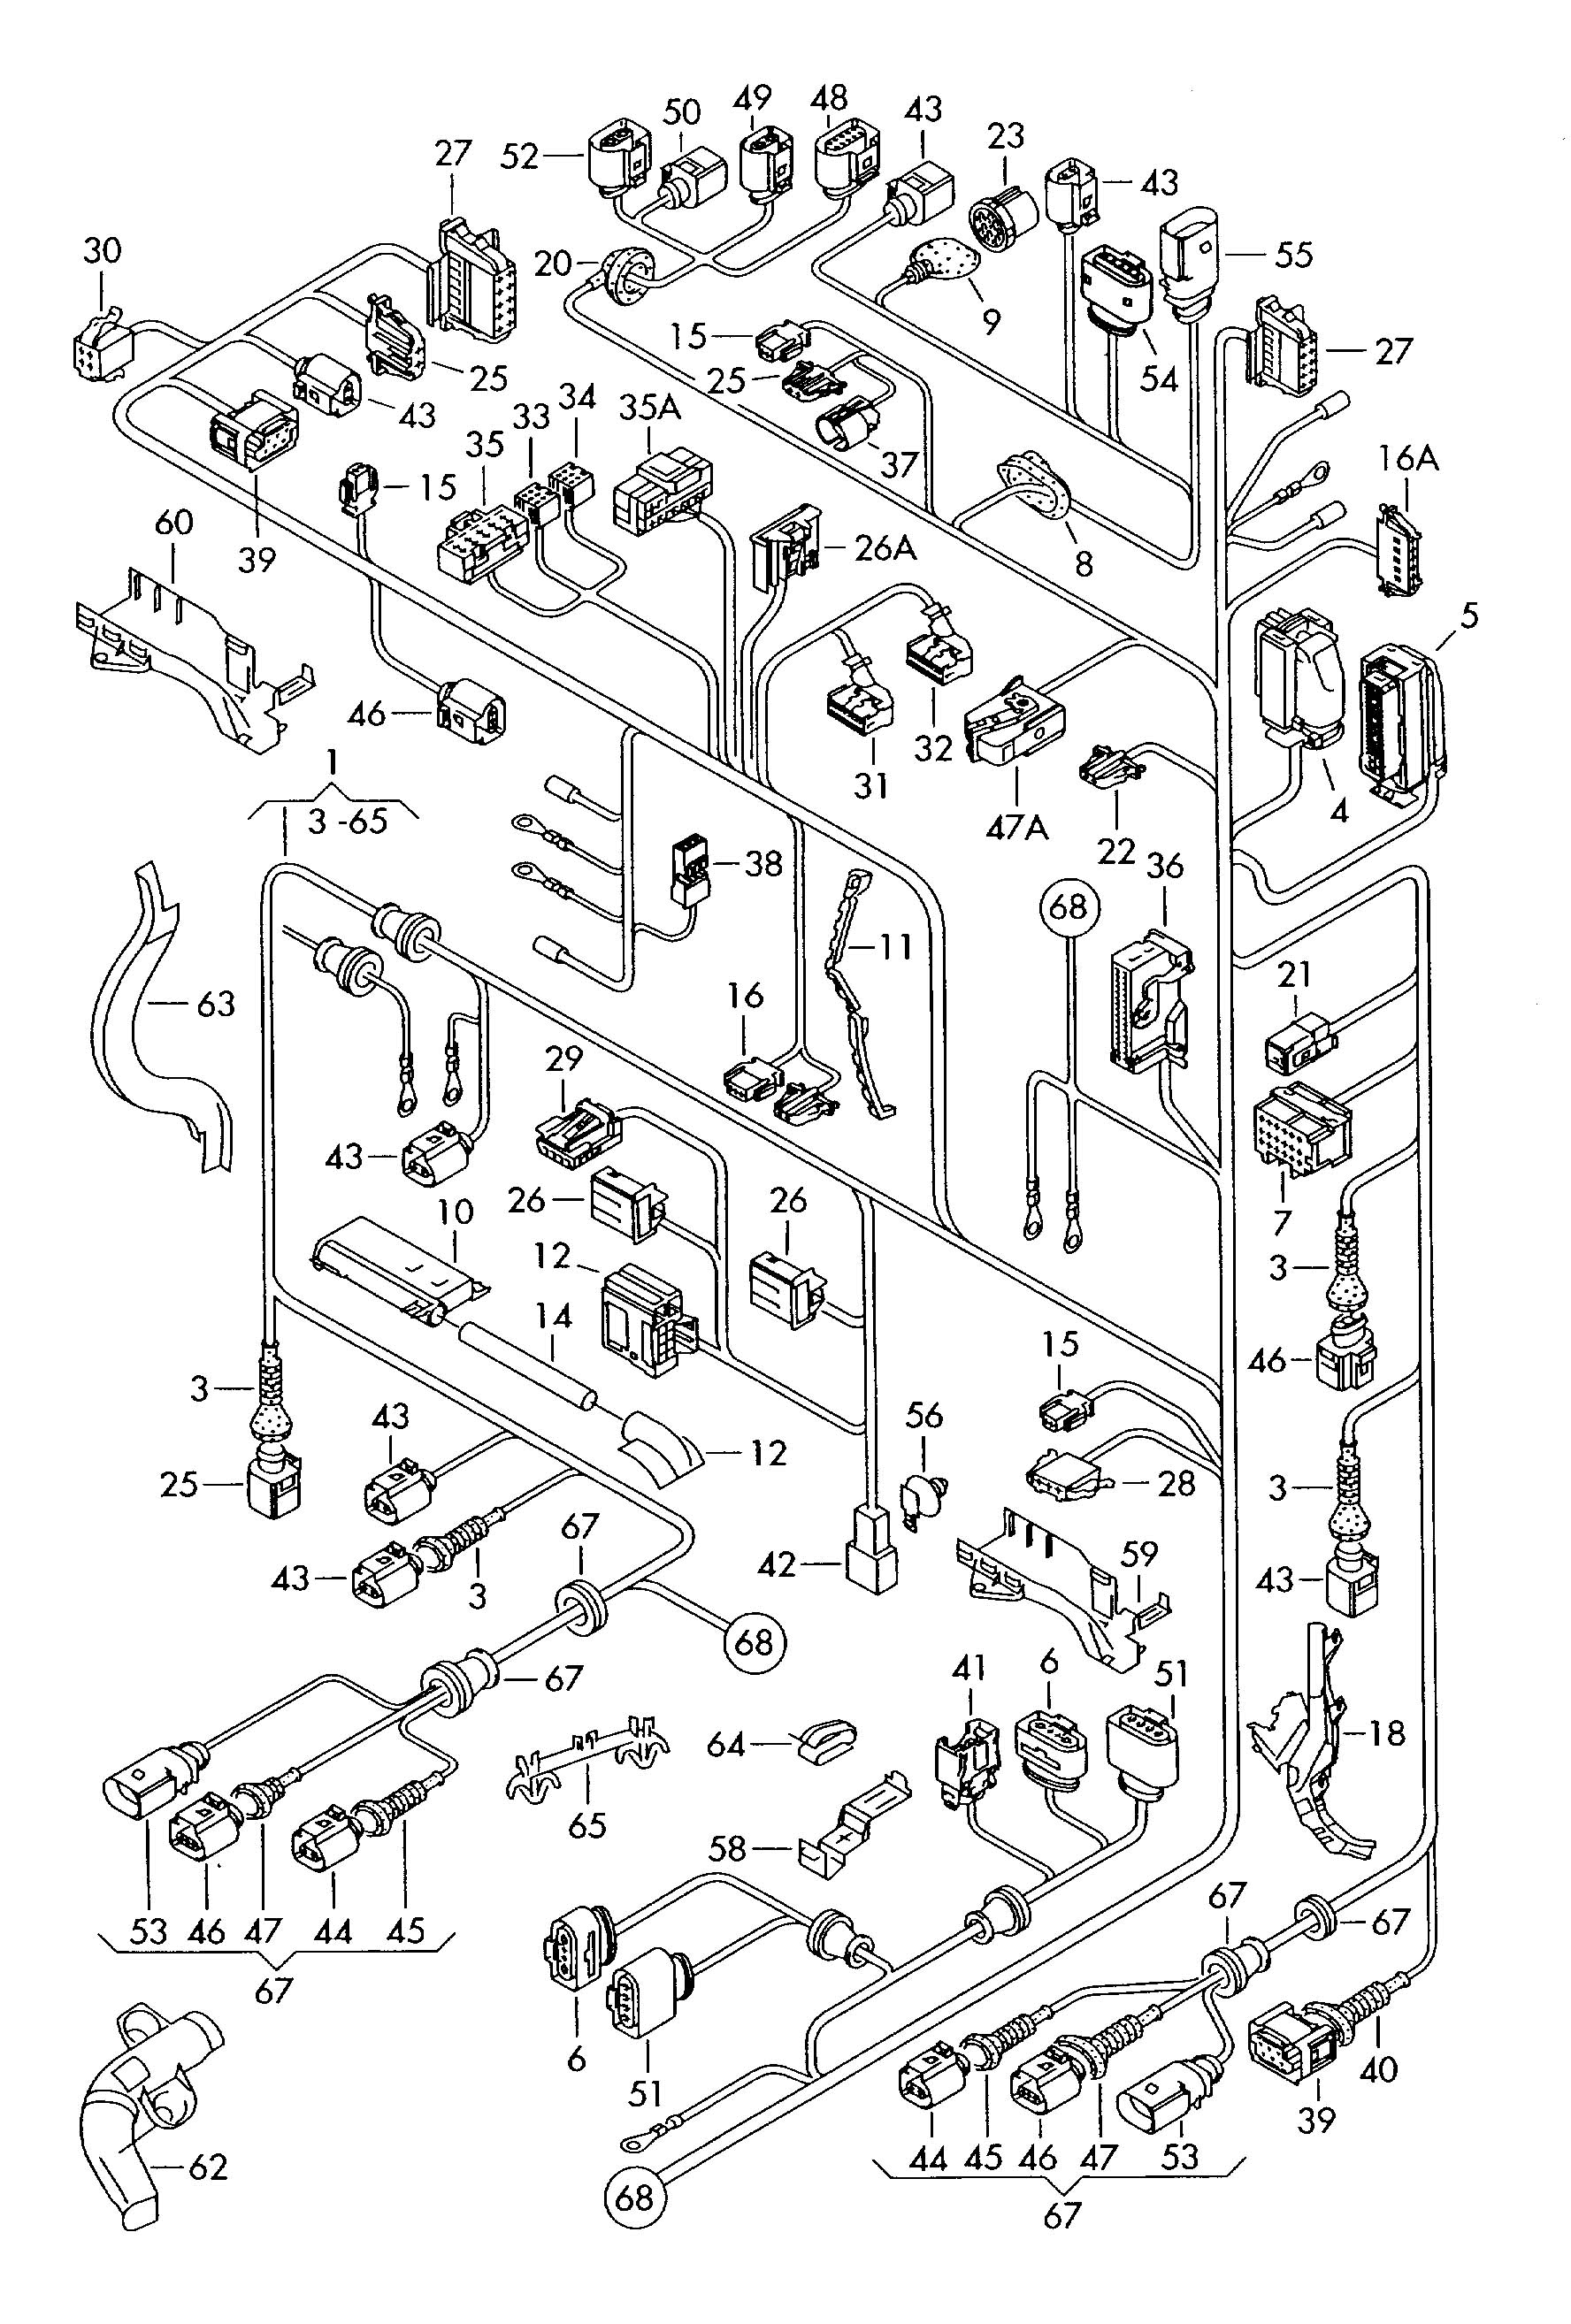 hight resolution of cable wire harness circuit diagram 3 wire bulb holder wiring harness parts wig wag wire harness